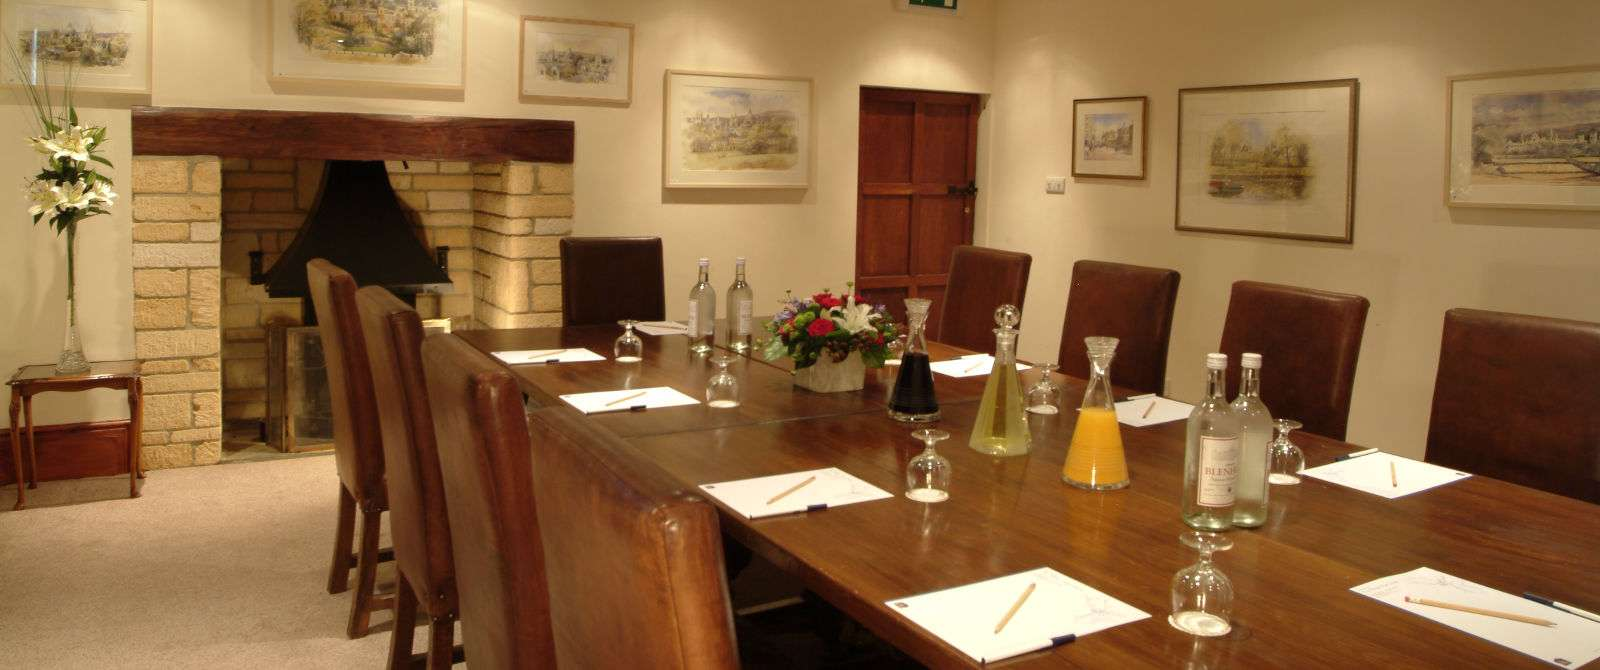 White Hart Hotel Meeting and Events Room in Dorchester